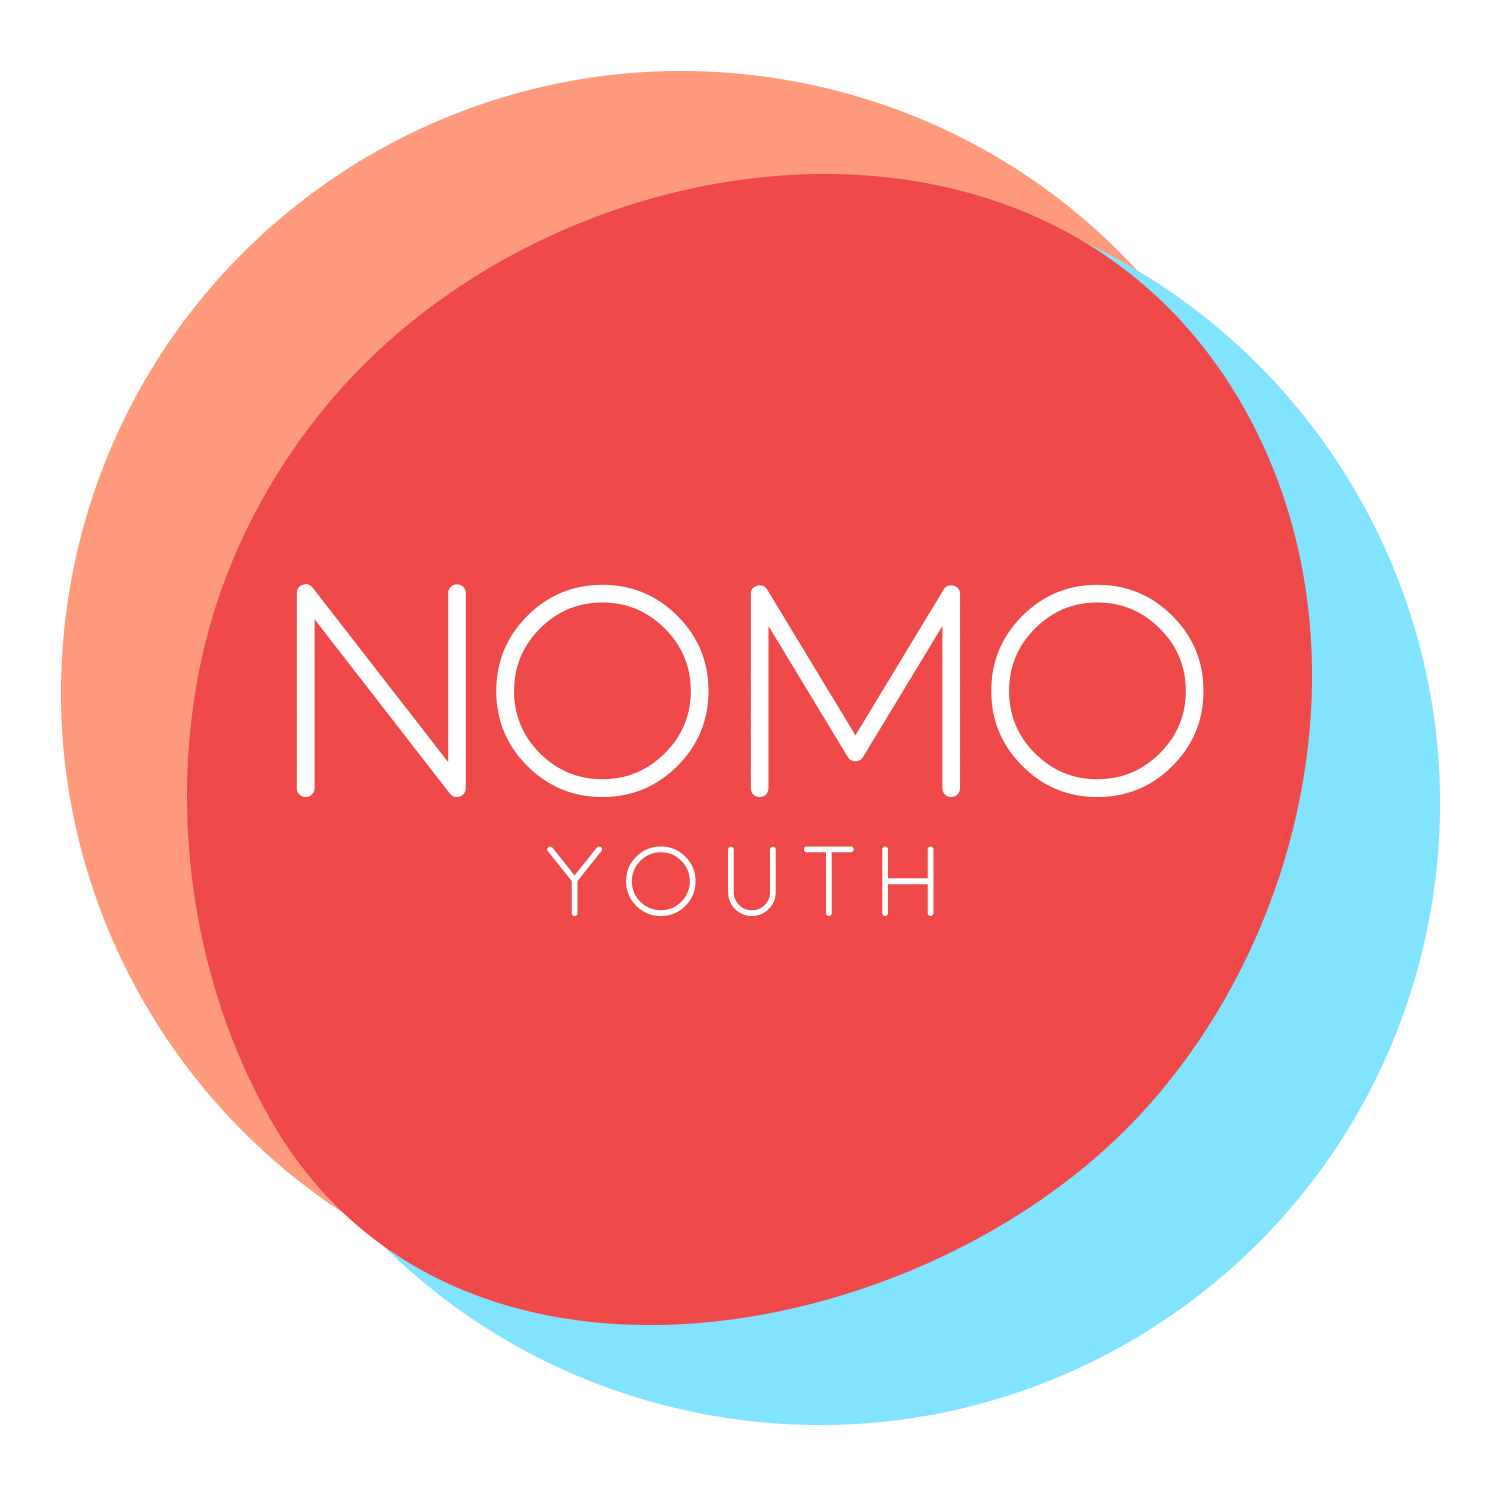 NOMO Youth